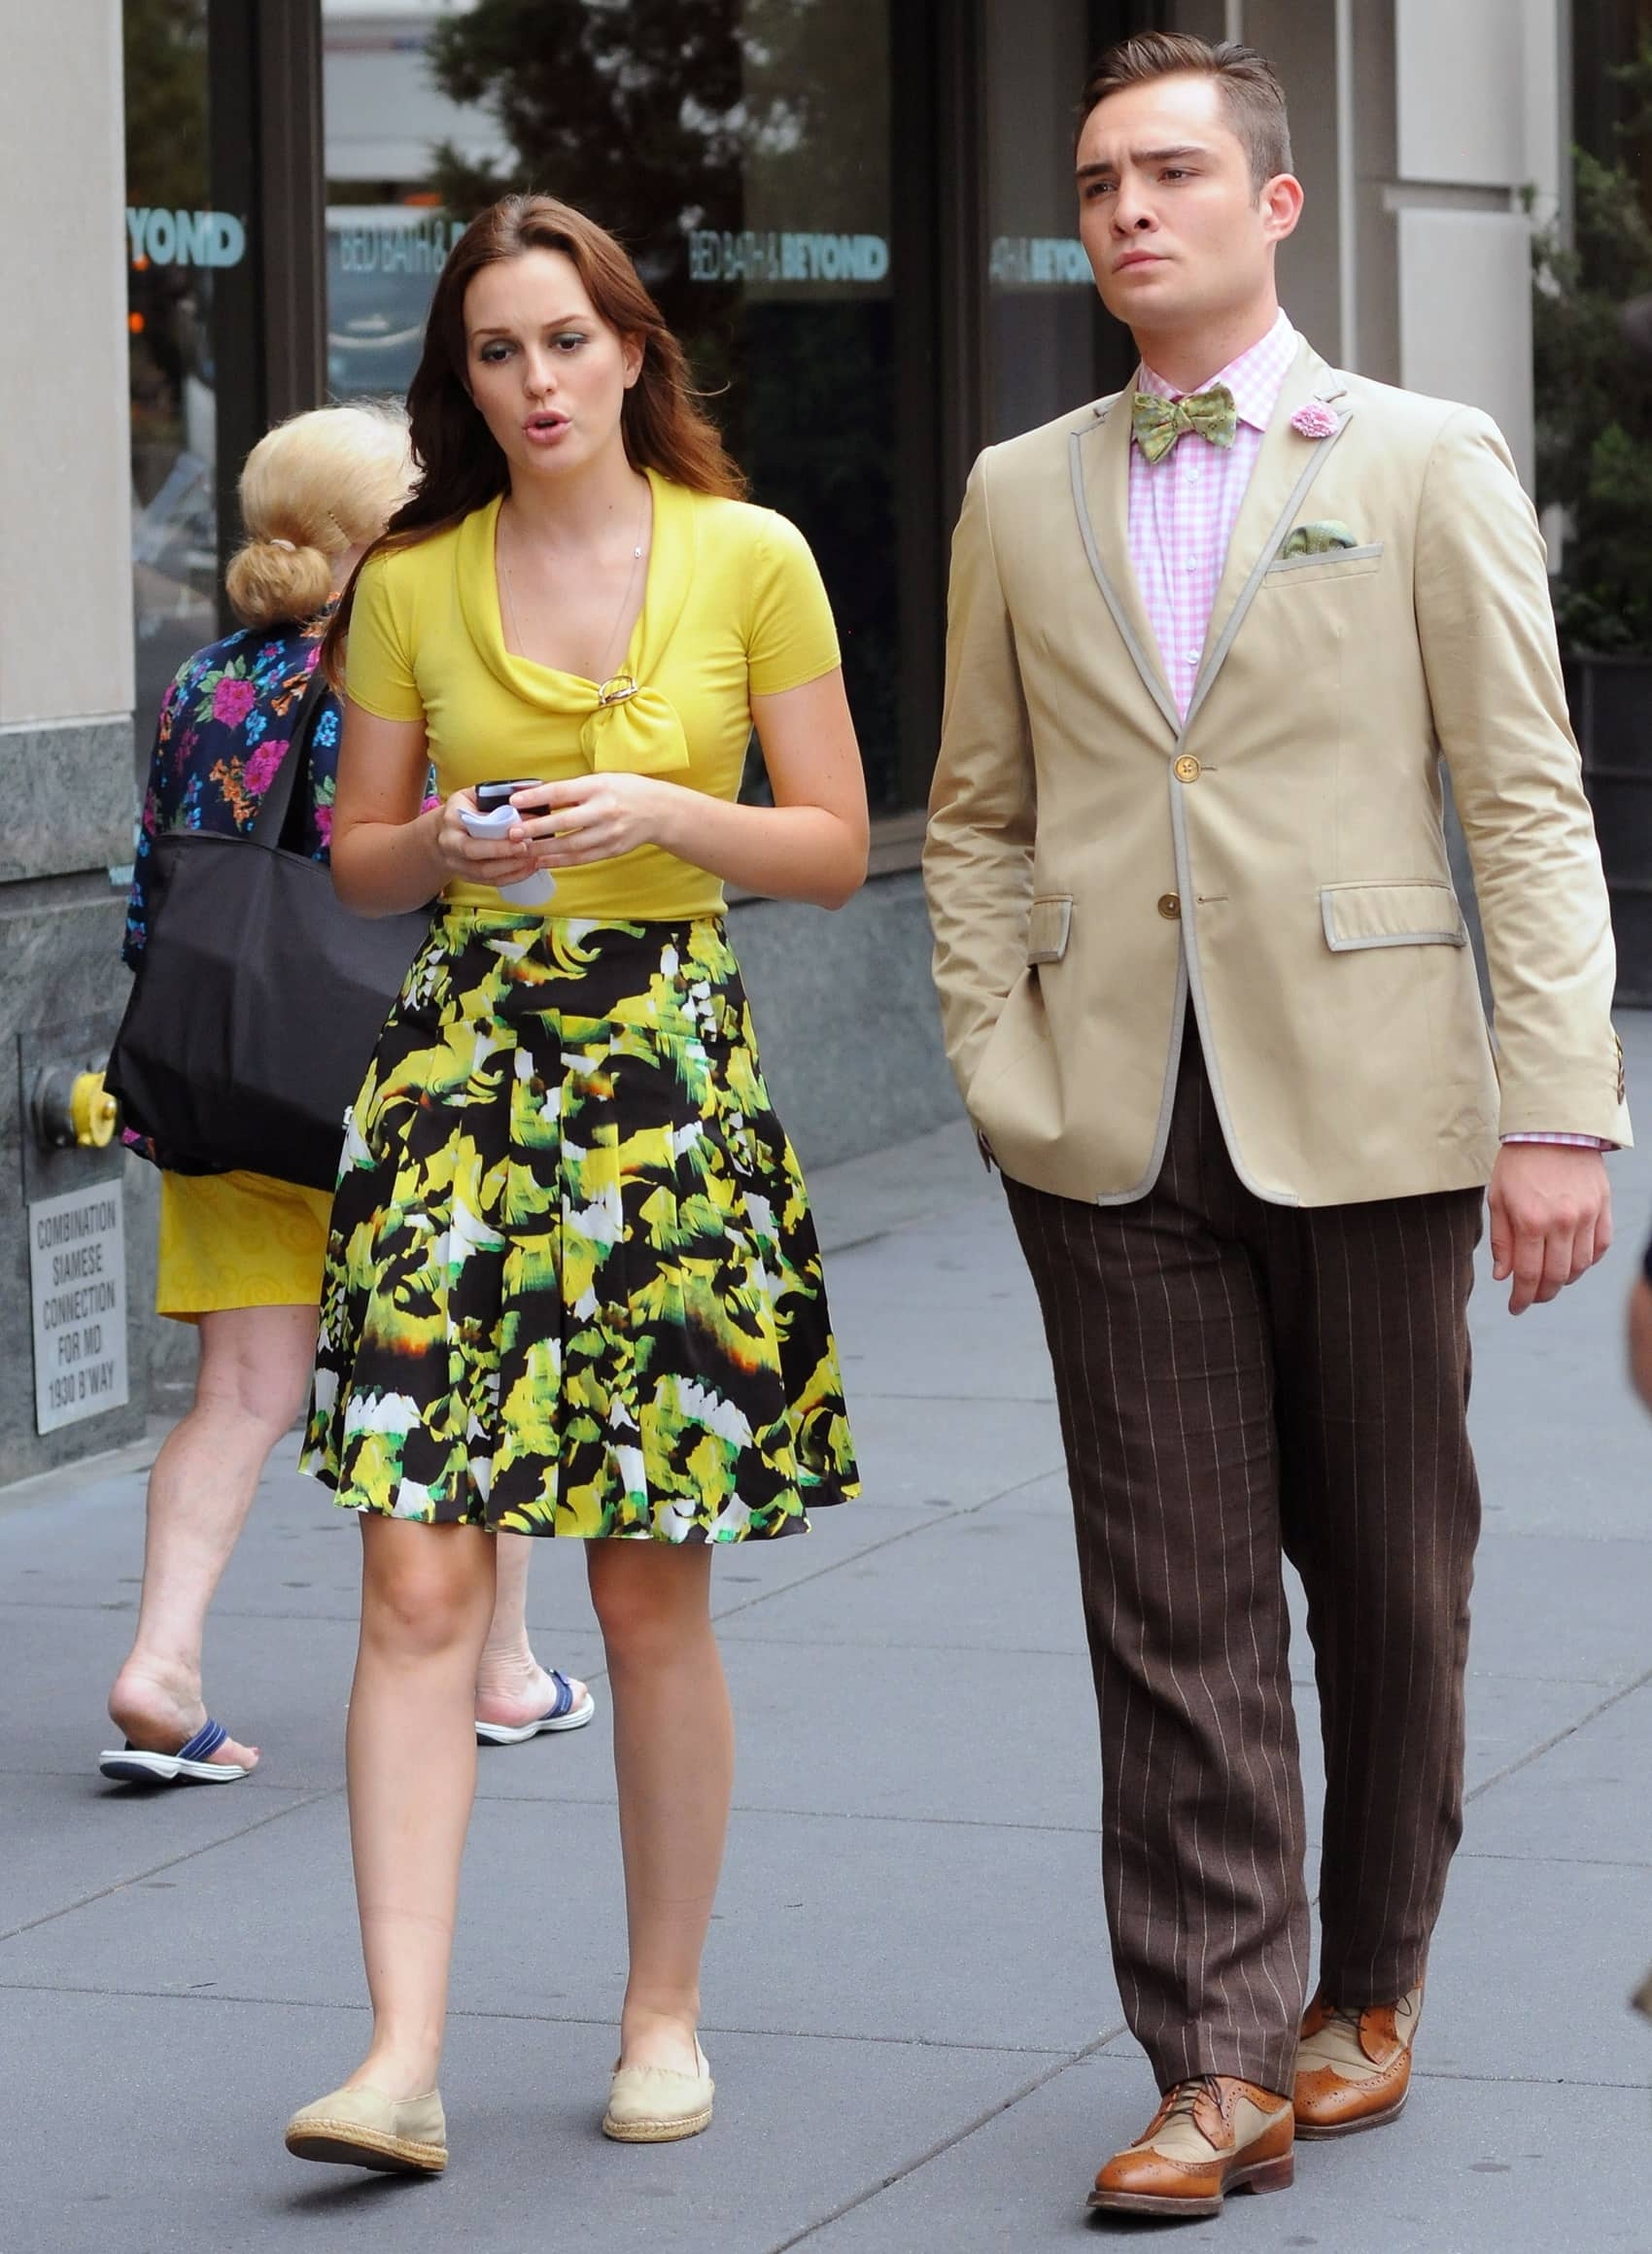 Leighton Meester and Ed Westwick filming 'Gossip Girl' on location in Manhattan